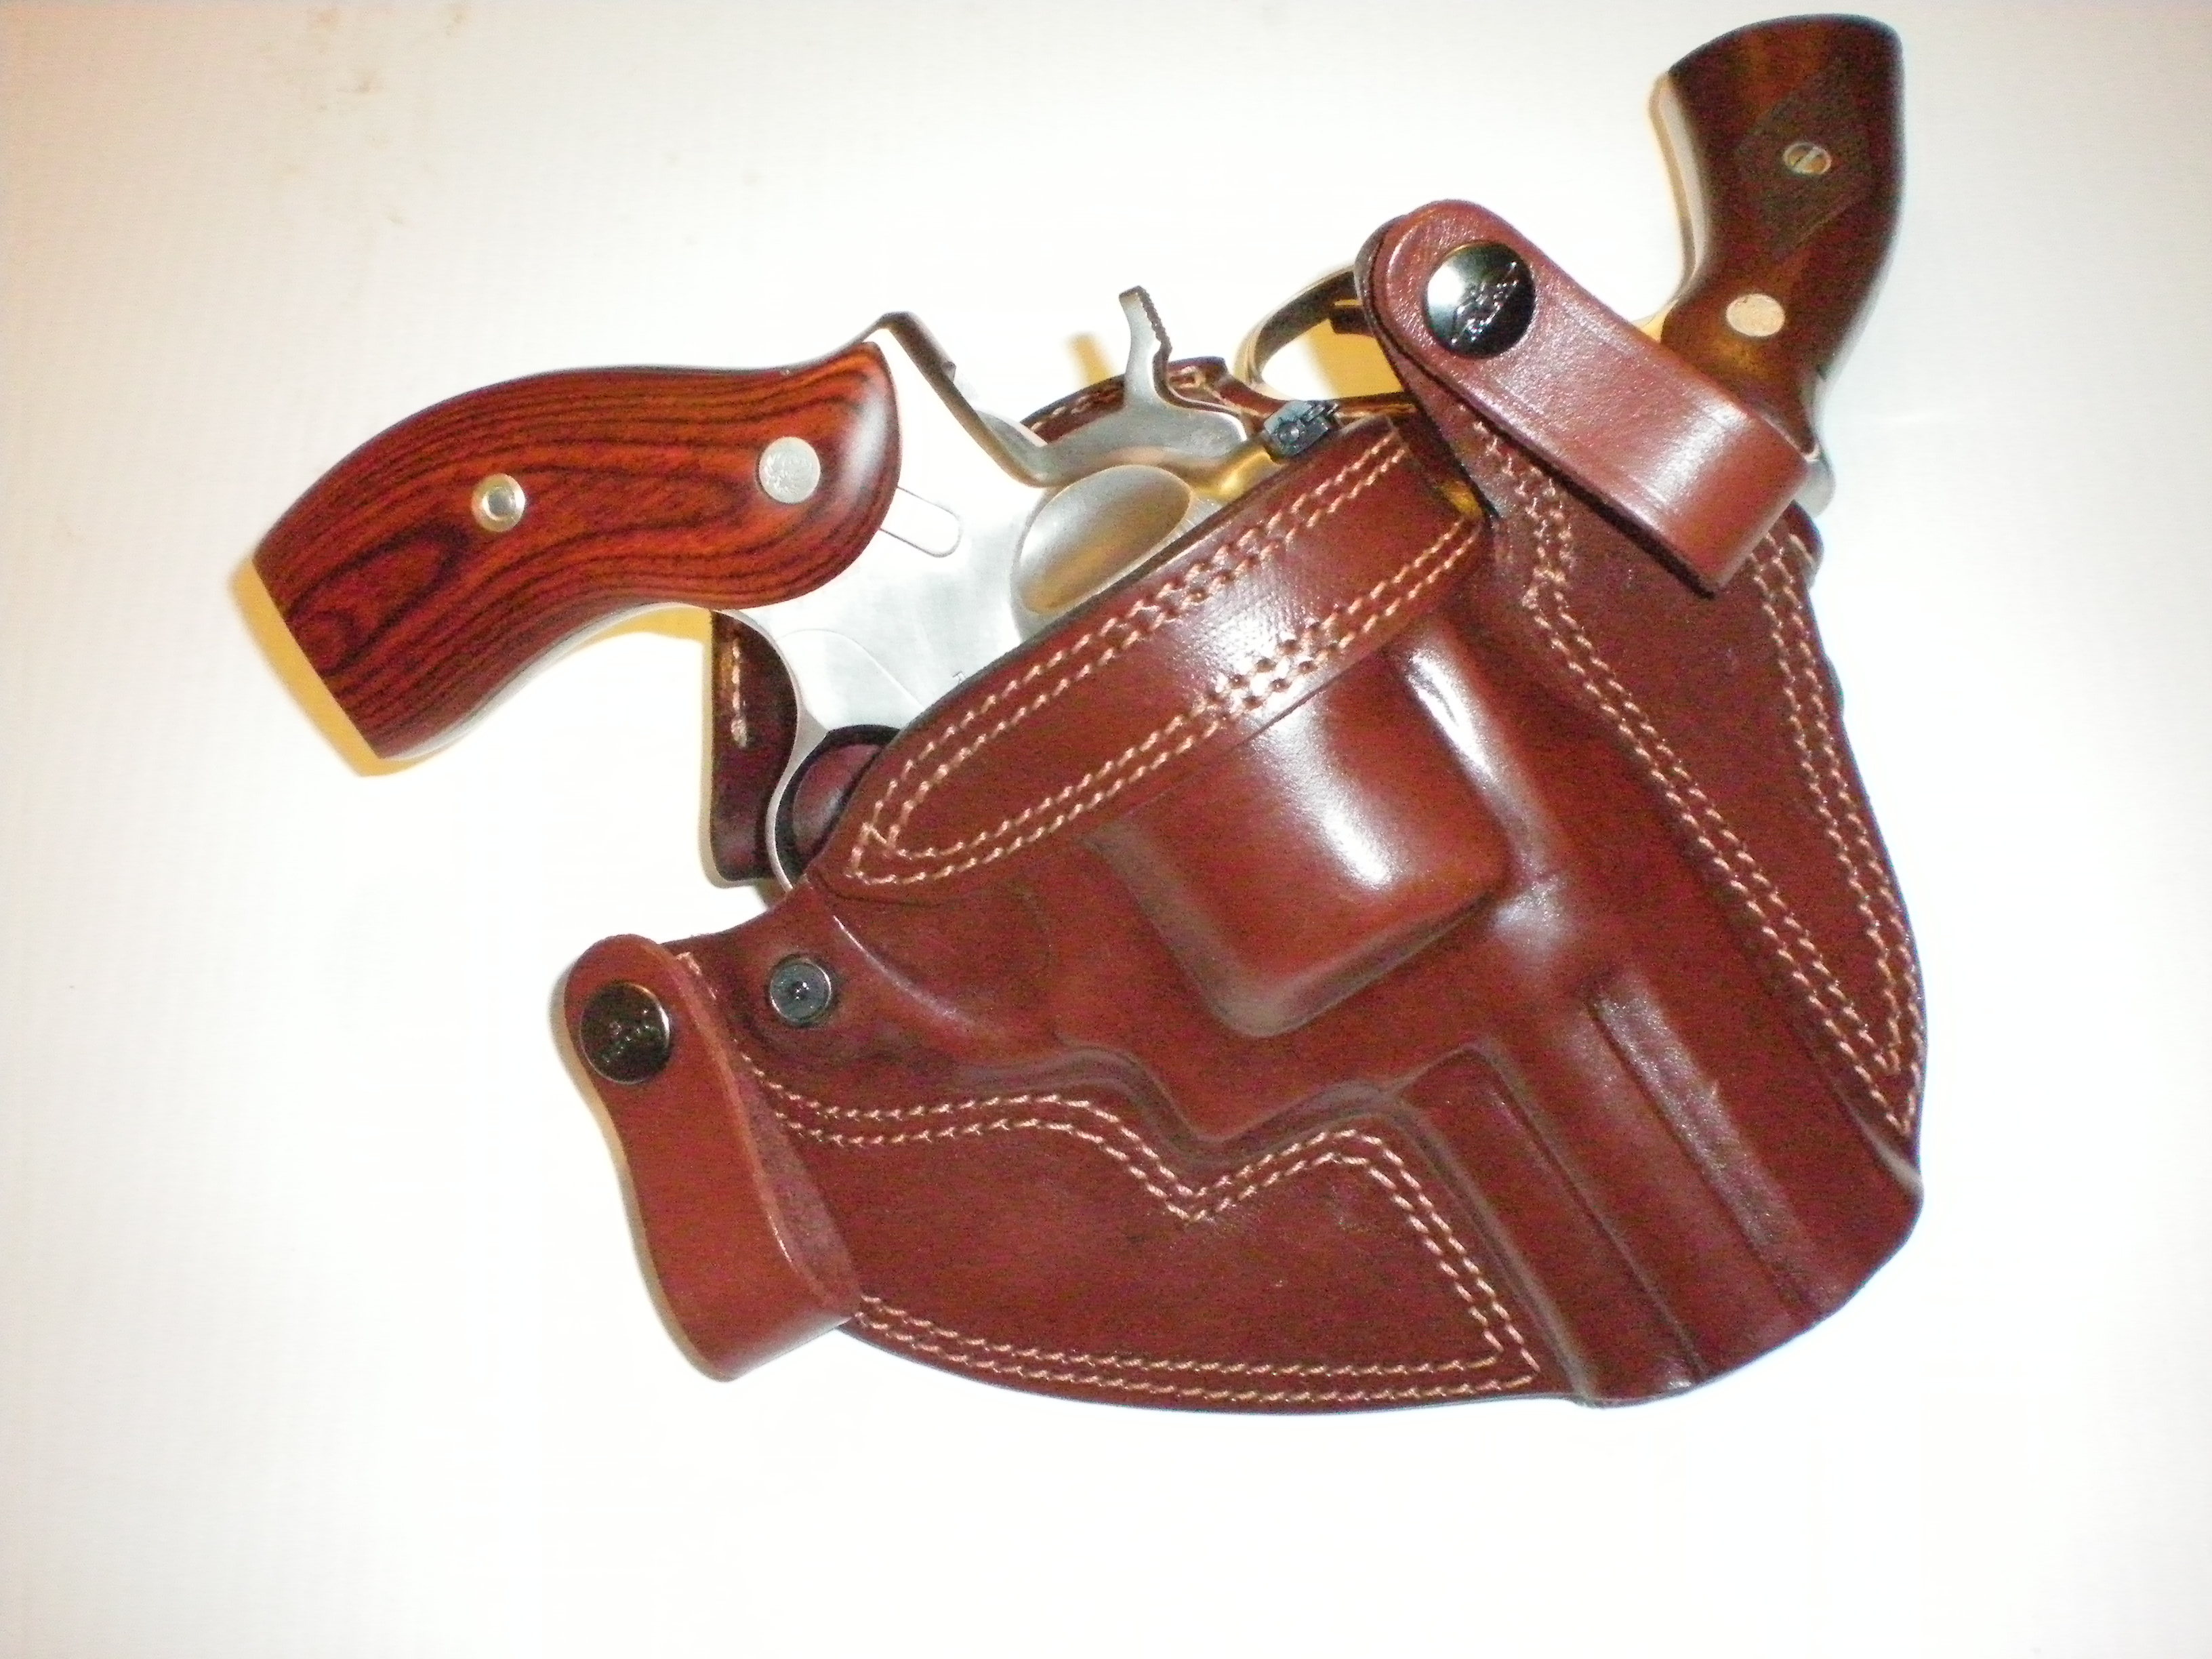 Appendix carry holster  Which works best for you?